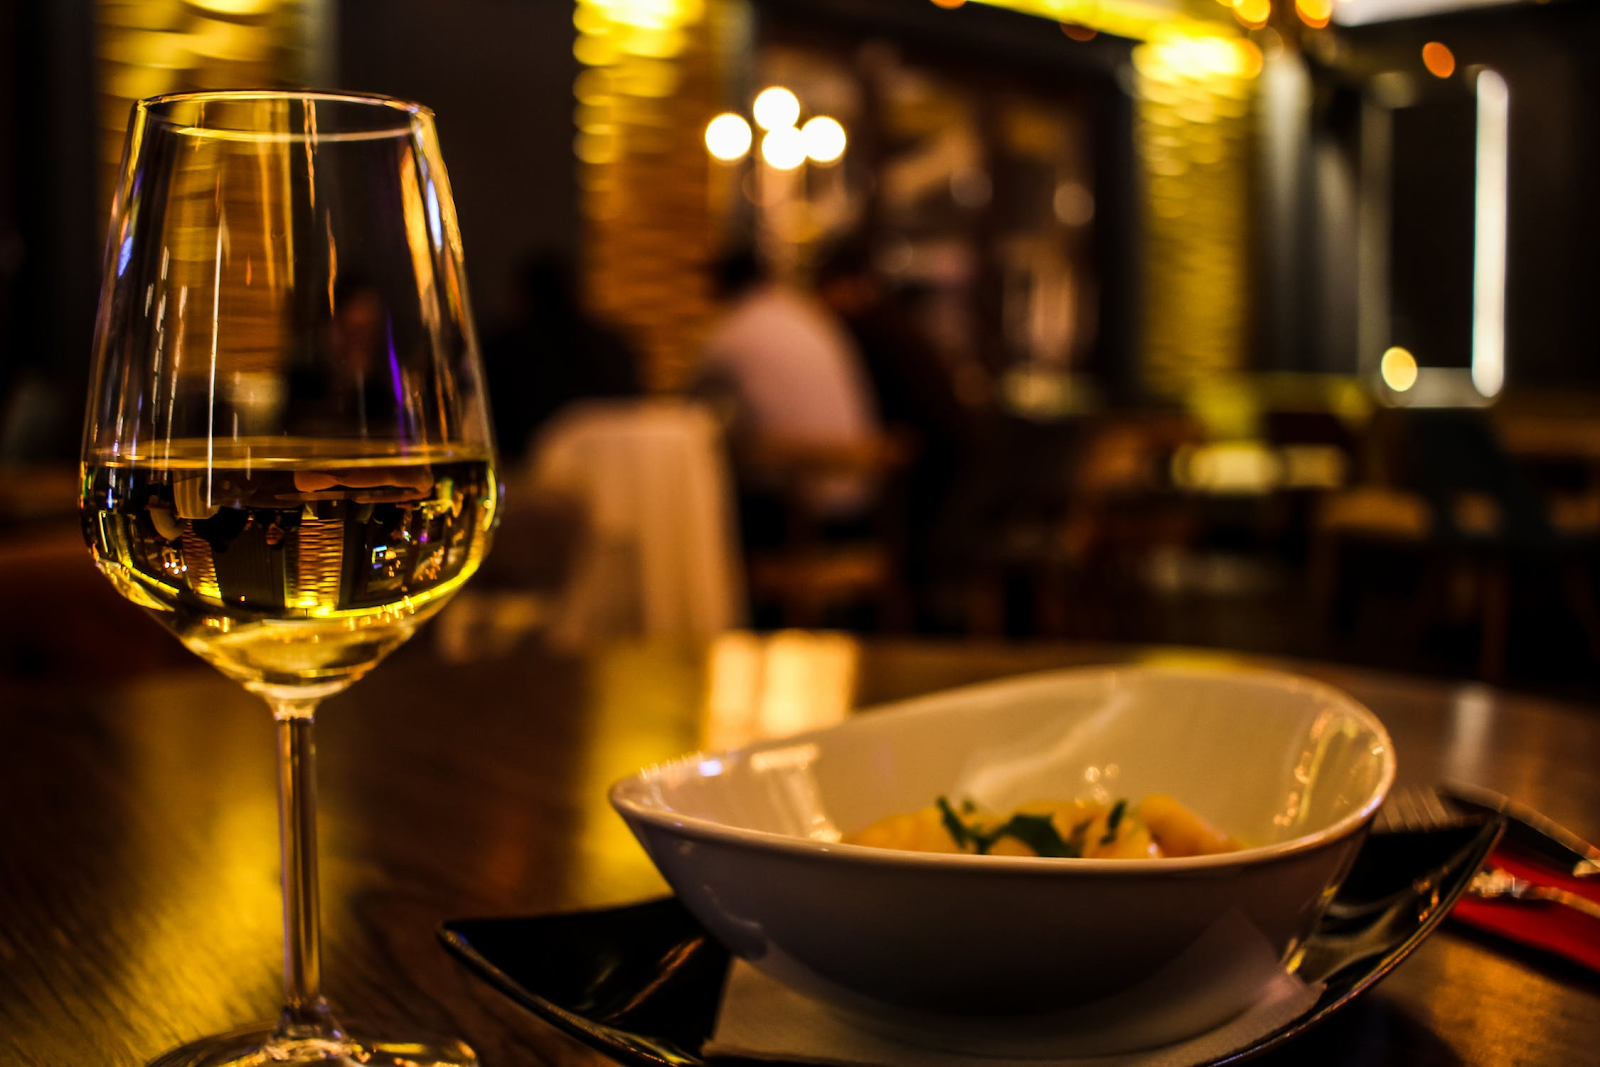 dish and a glass of wine in a dimly lit restaurant